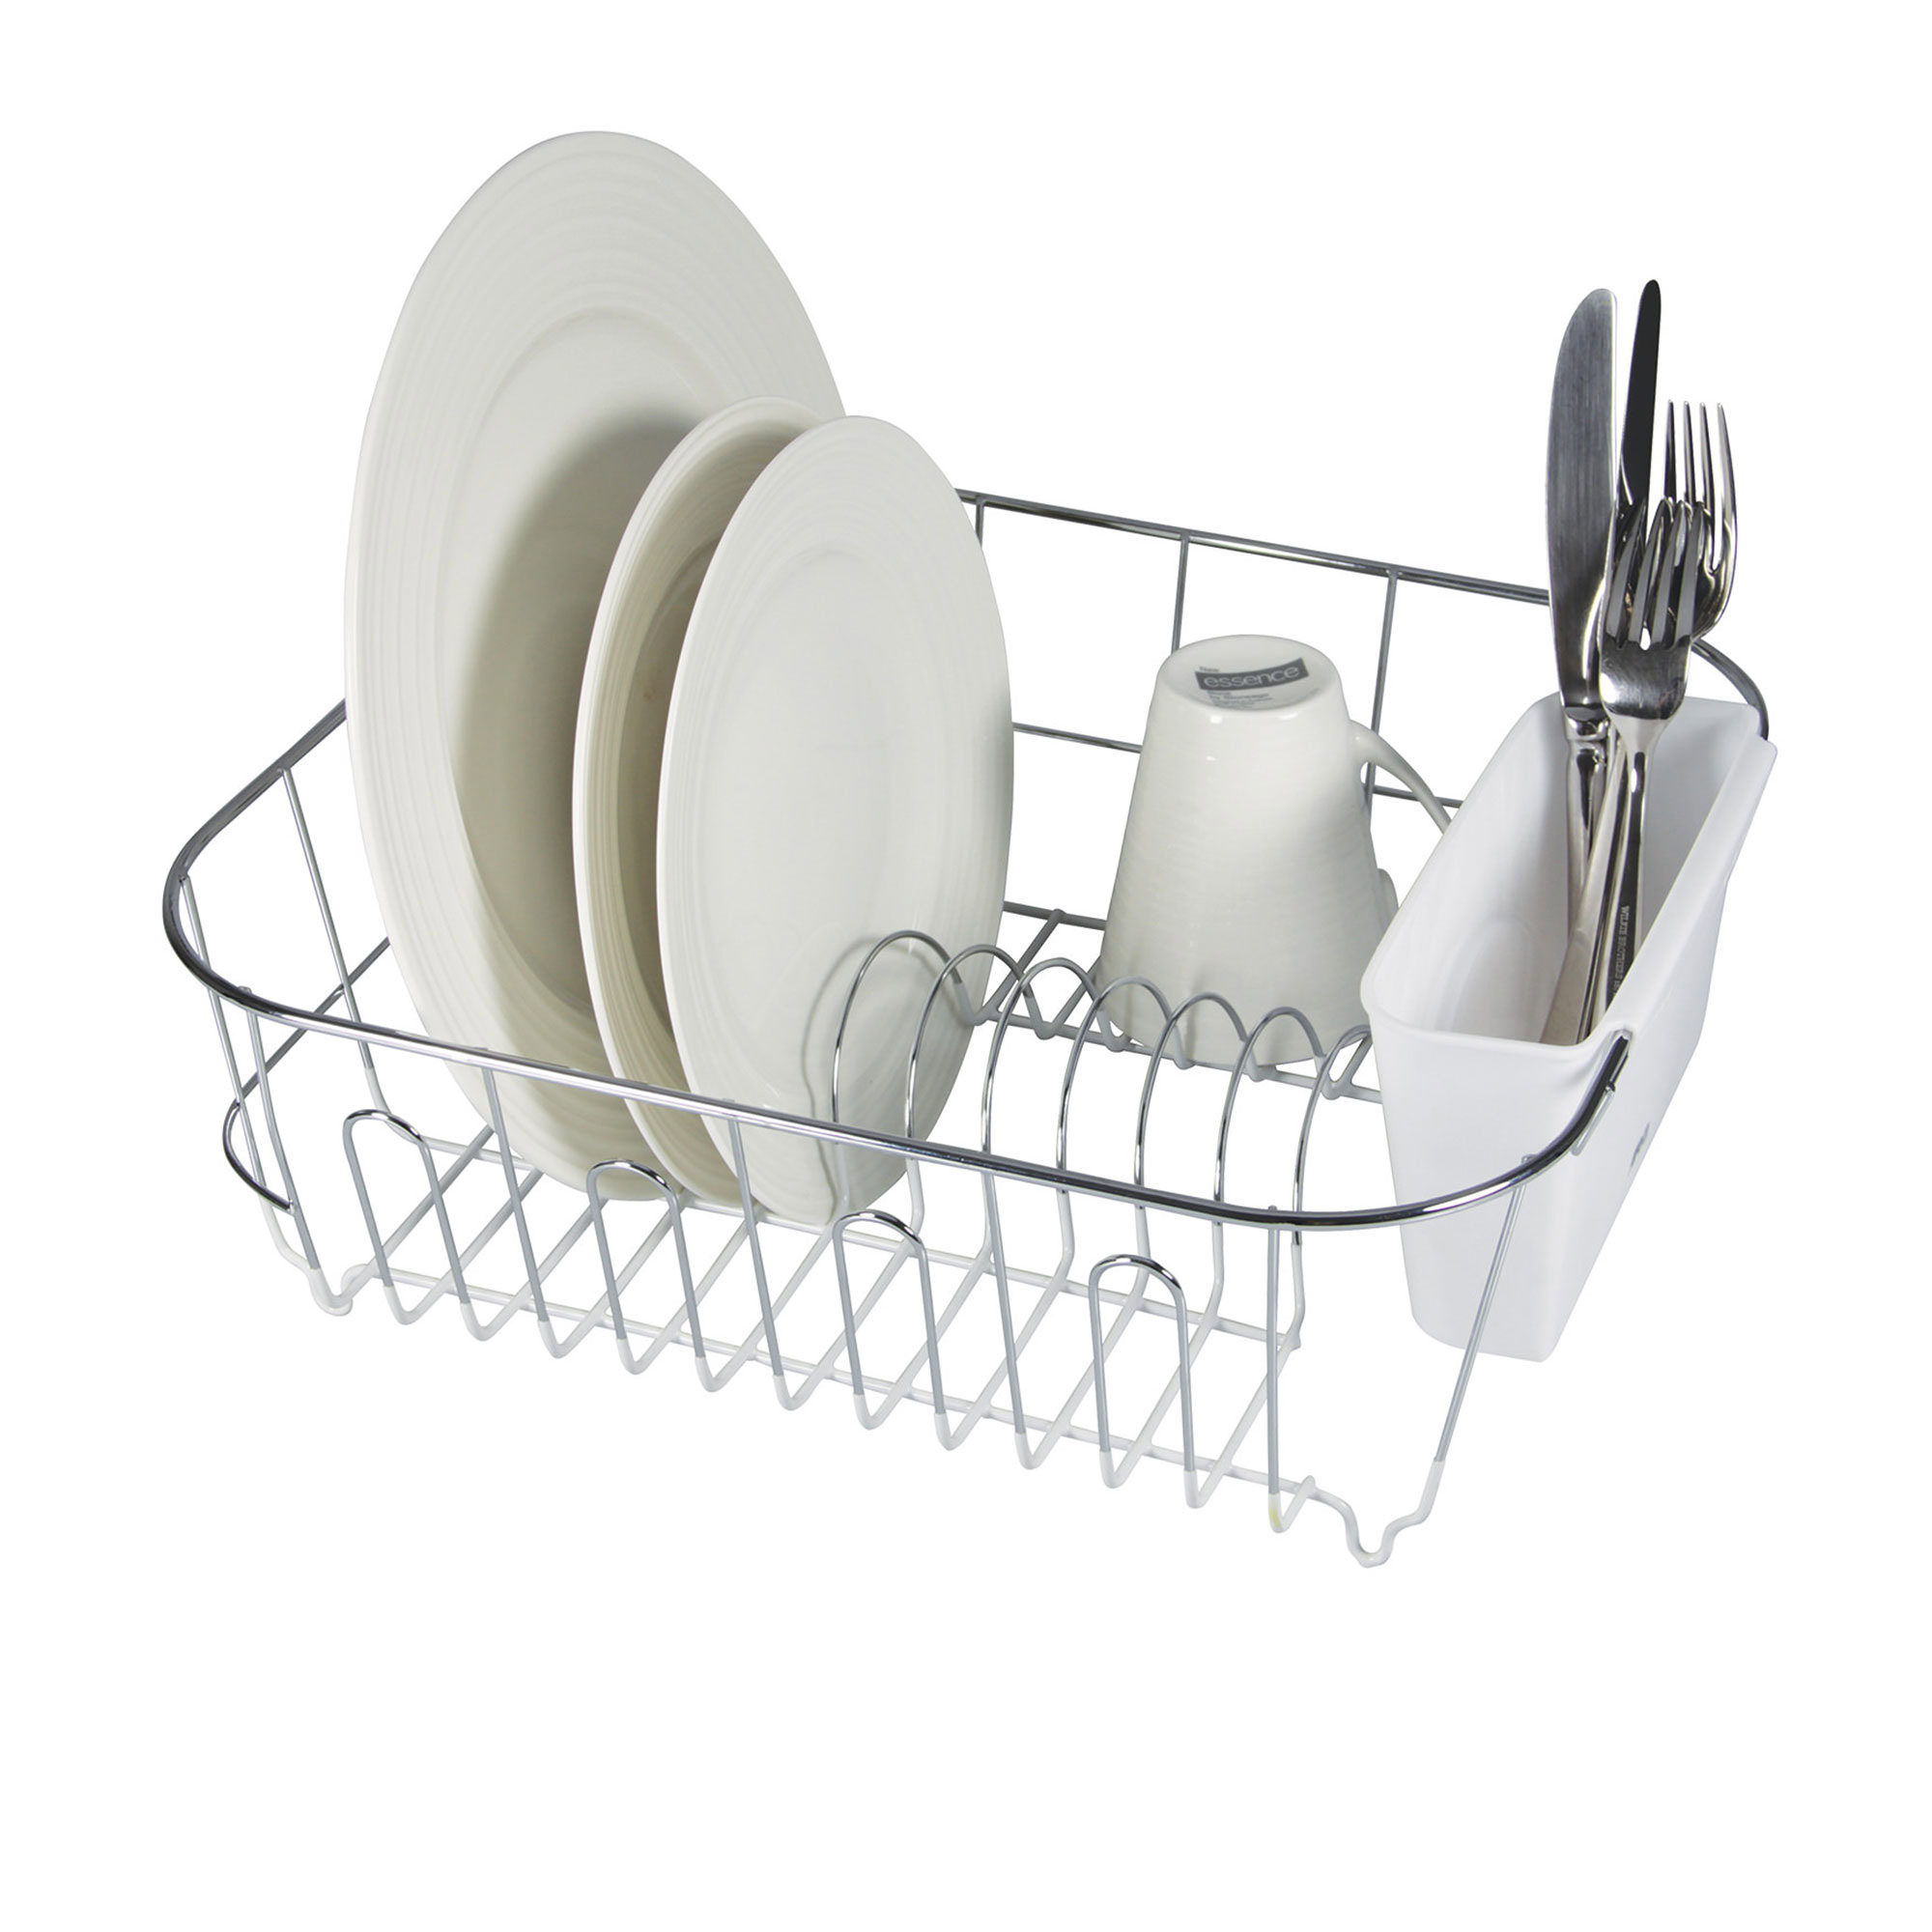 Avanti Small Dish Rack White